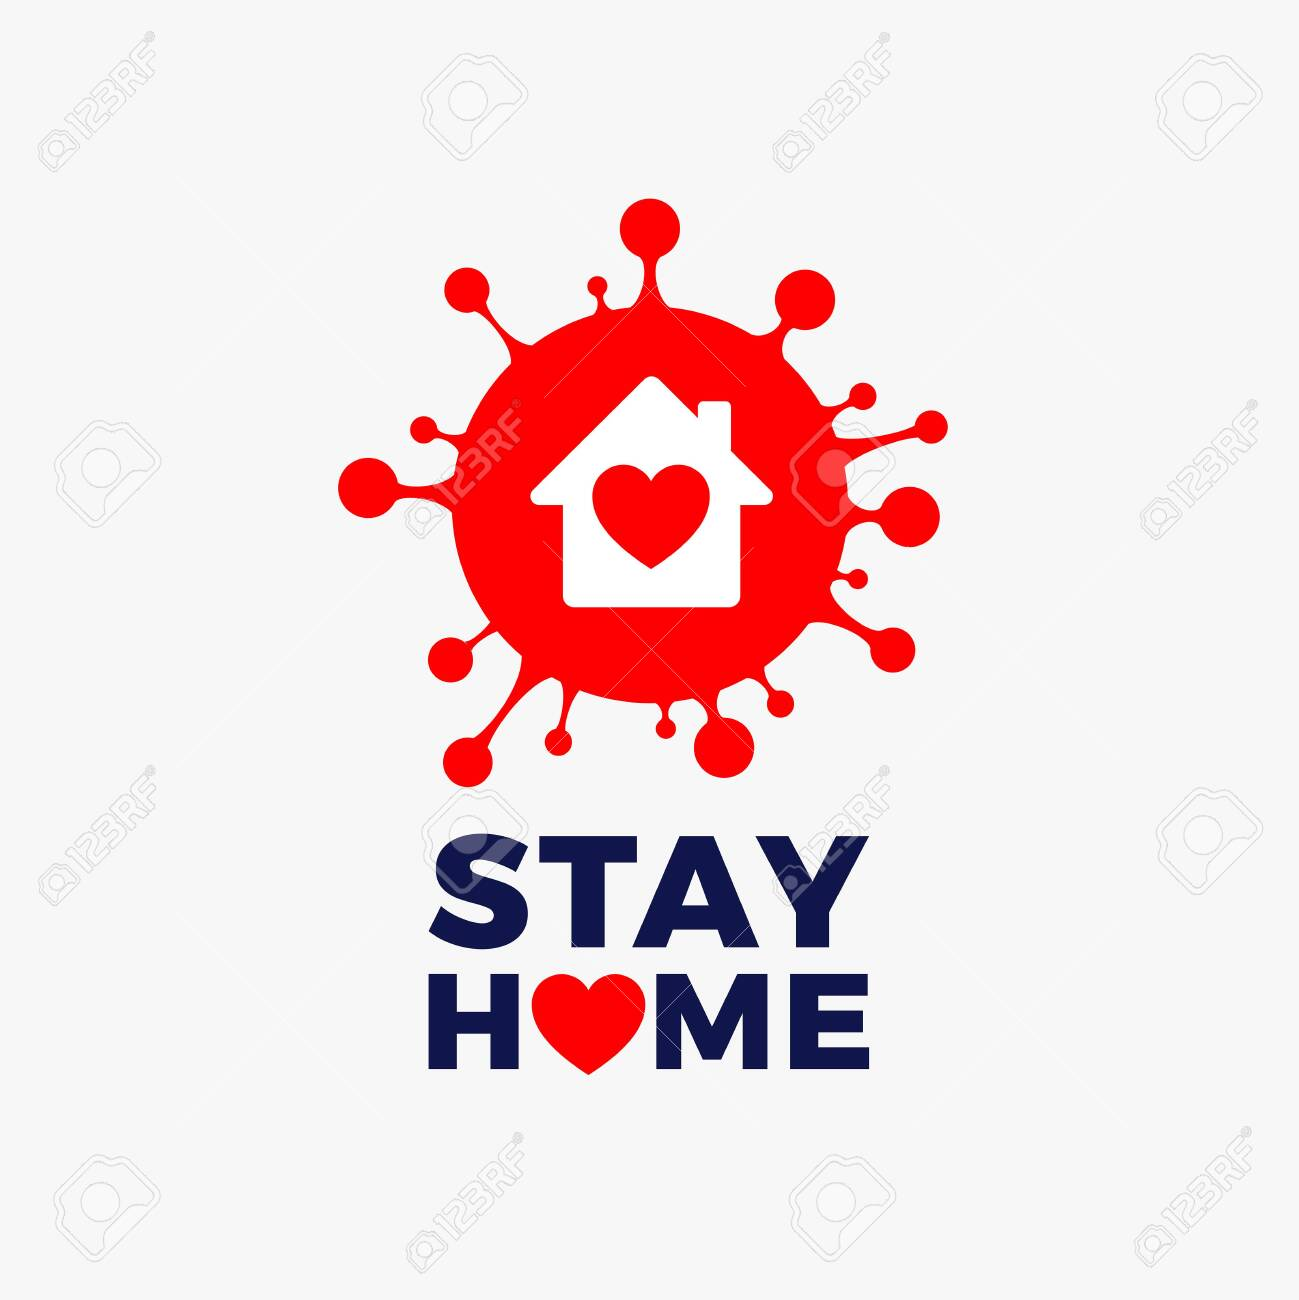 Stay home icon vector - red corona COVID 19 virus with house icon and heart inside and Stay Home text - vector illustration isolated on white background - 146827661